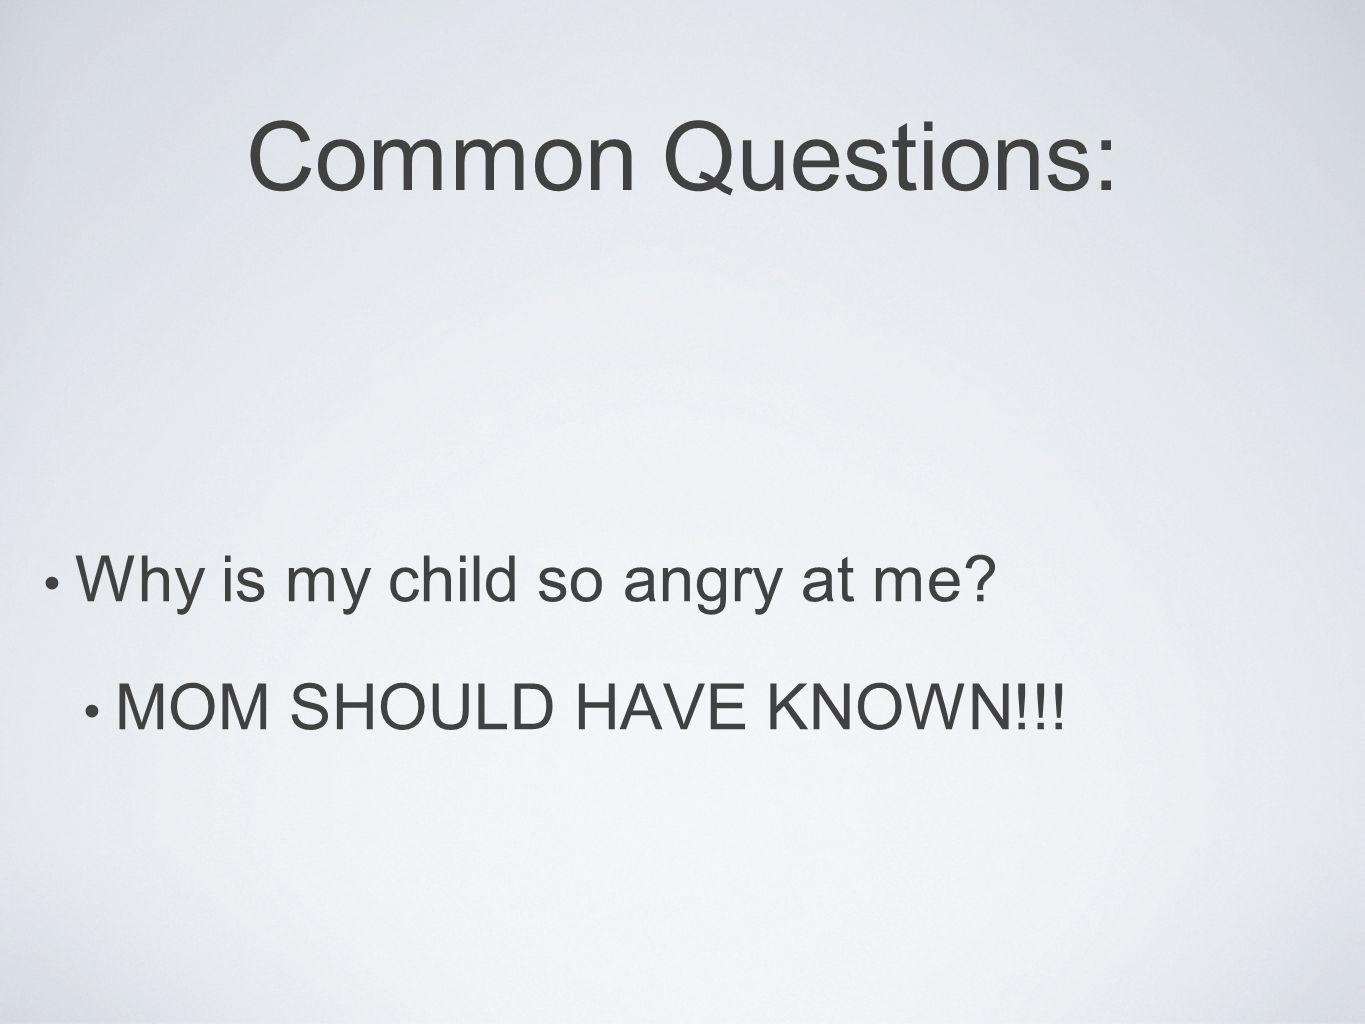 Common Questions: Why is my child so angry at me